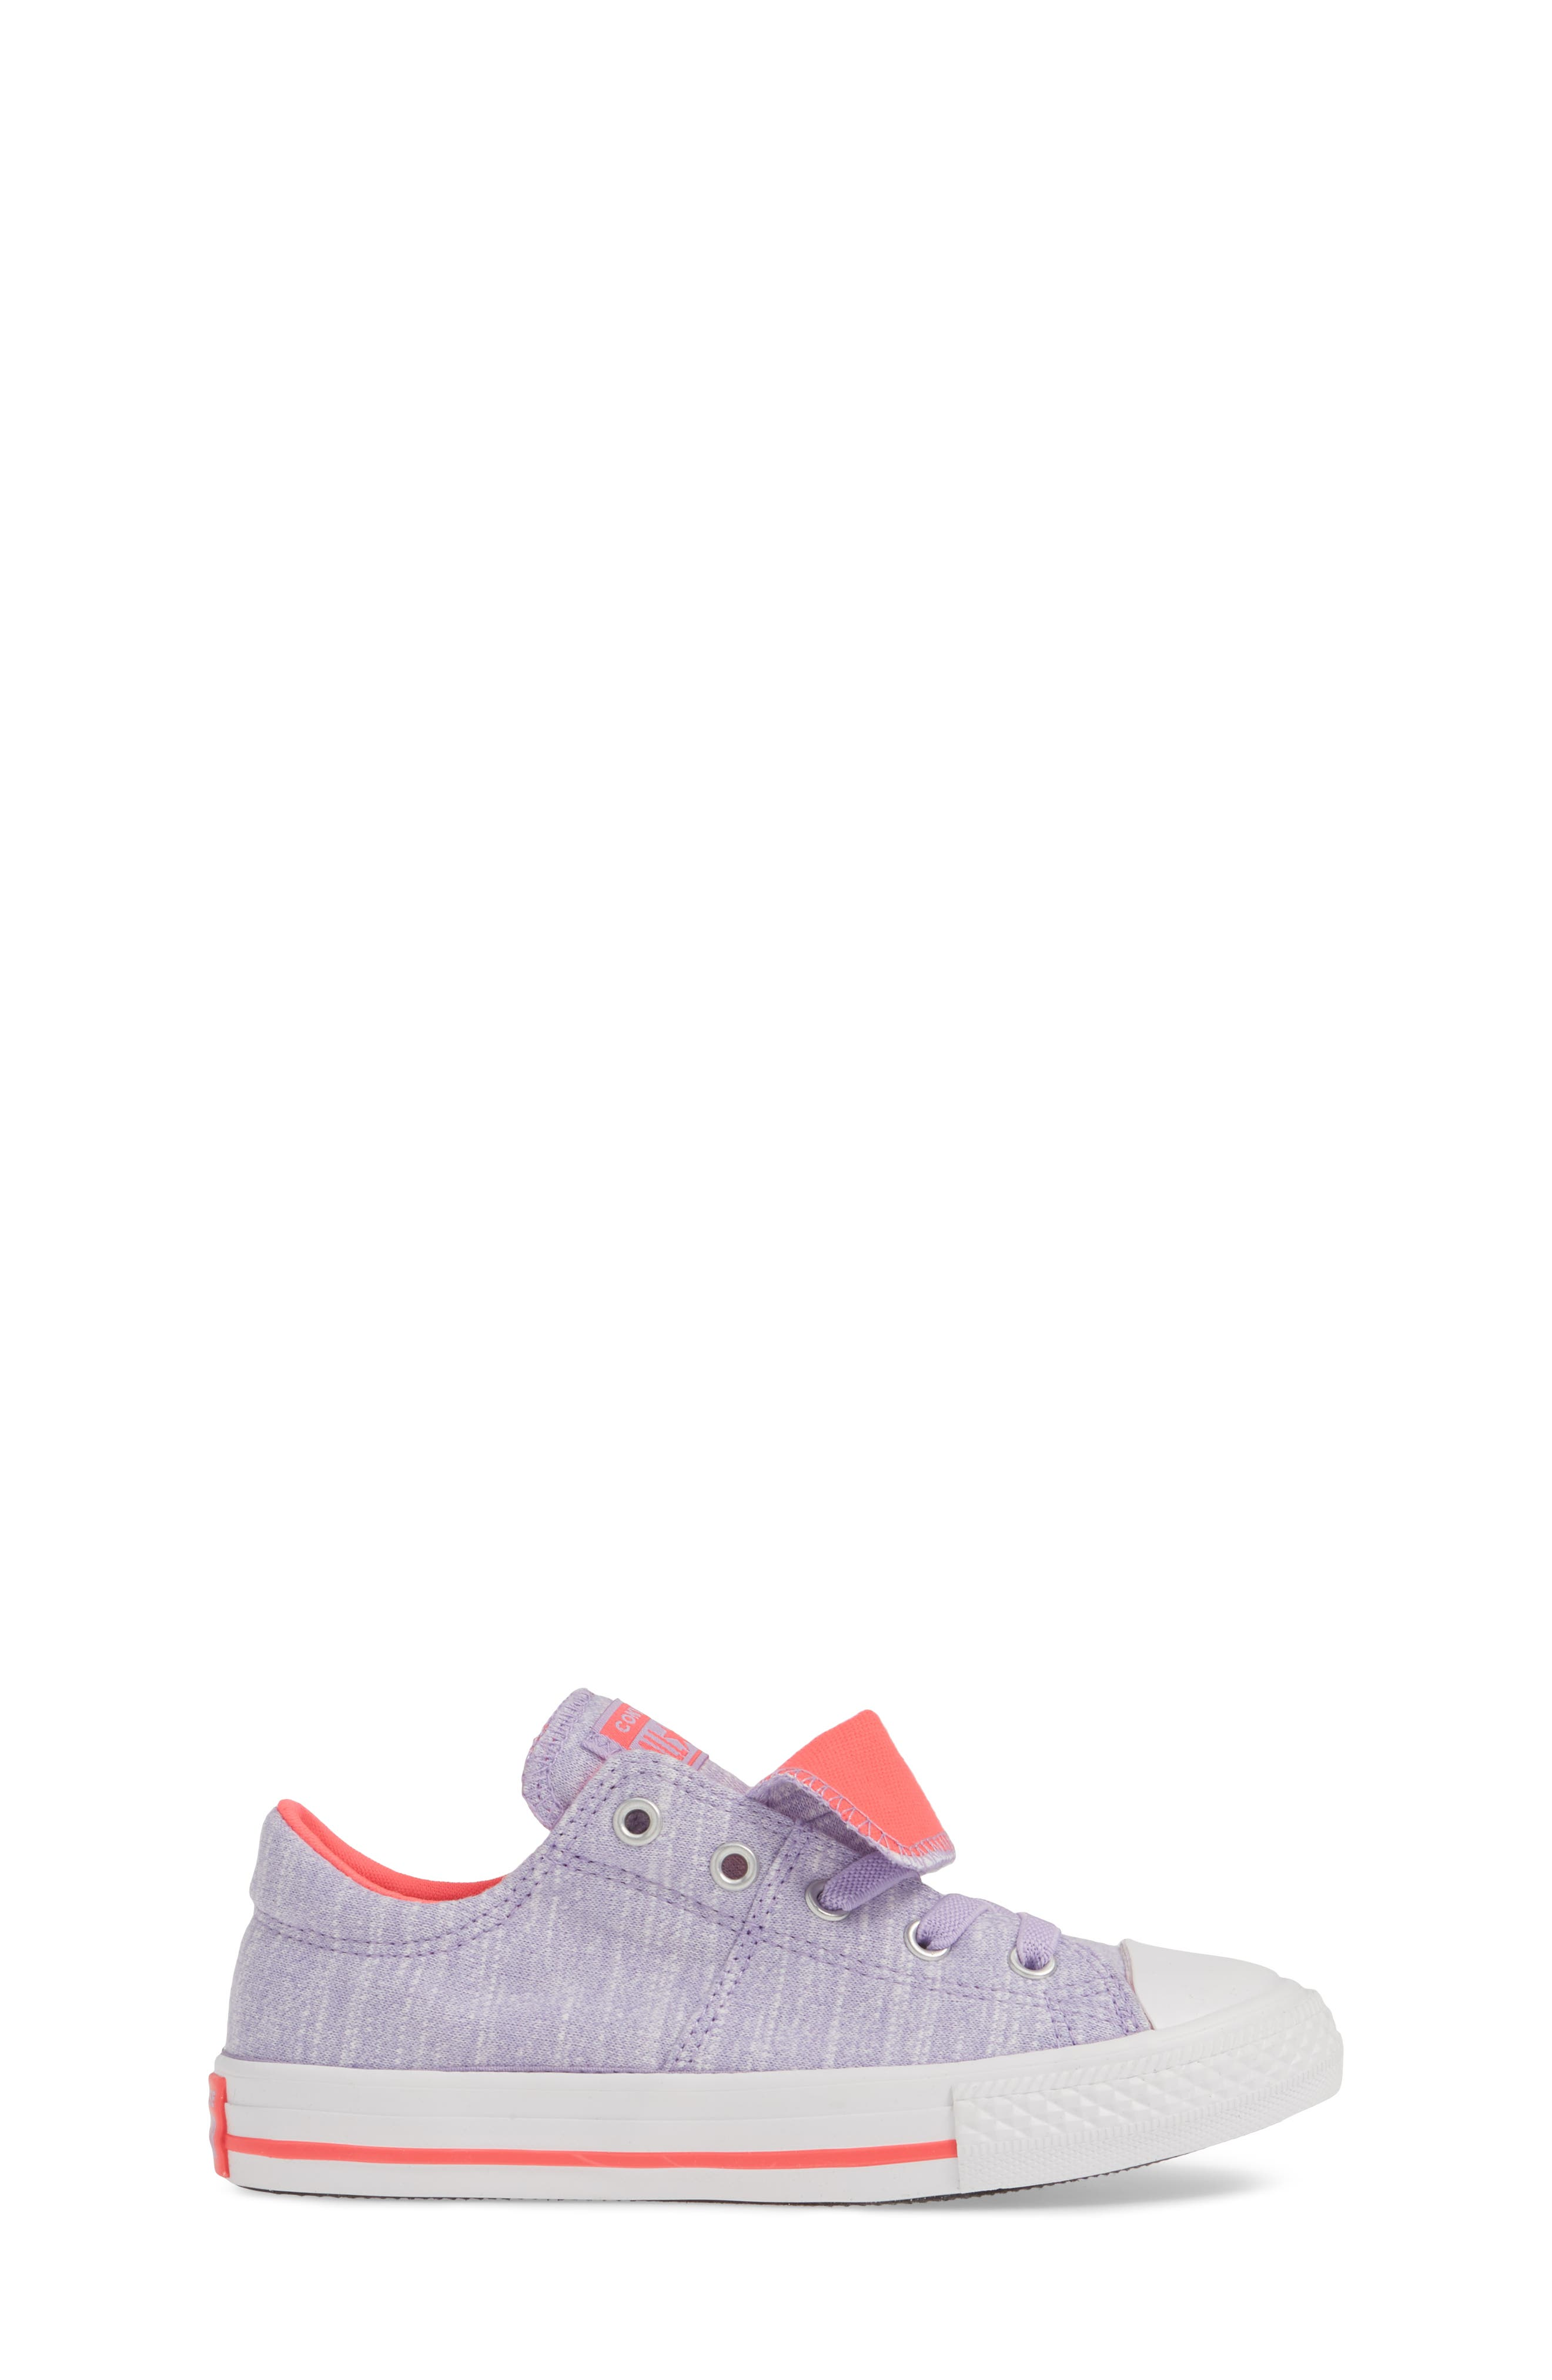 ,                             Chuck Taylor<sup>®</sup> All Star<sup>®</sup> Maddie Double Tongue Sneaker,                             Alternate thumbnail 27, color,                             506